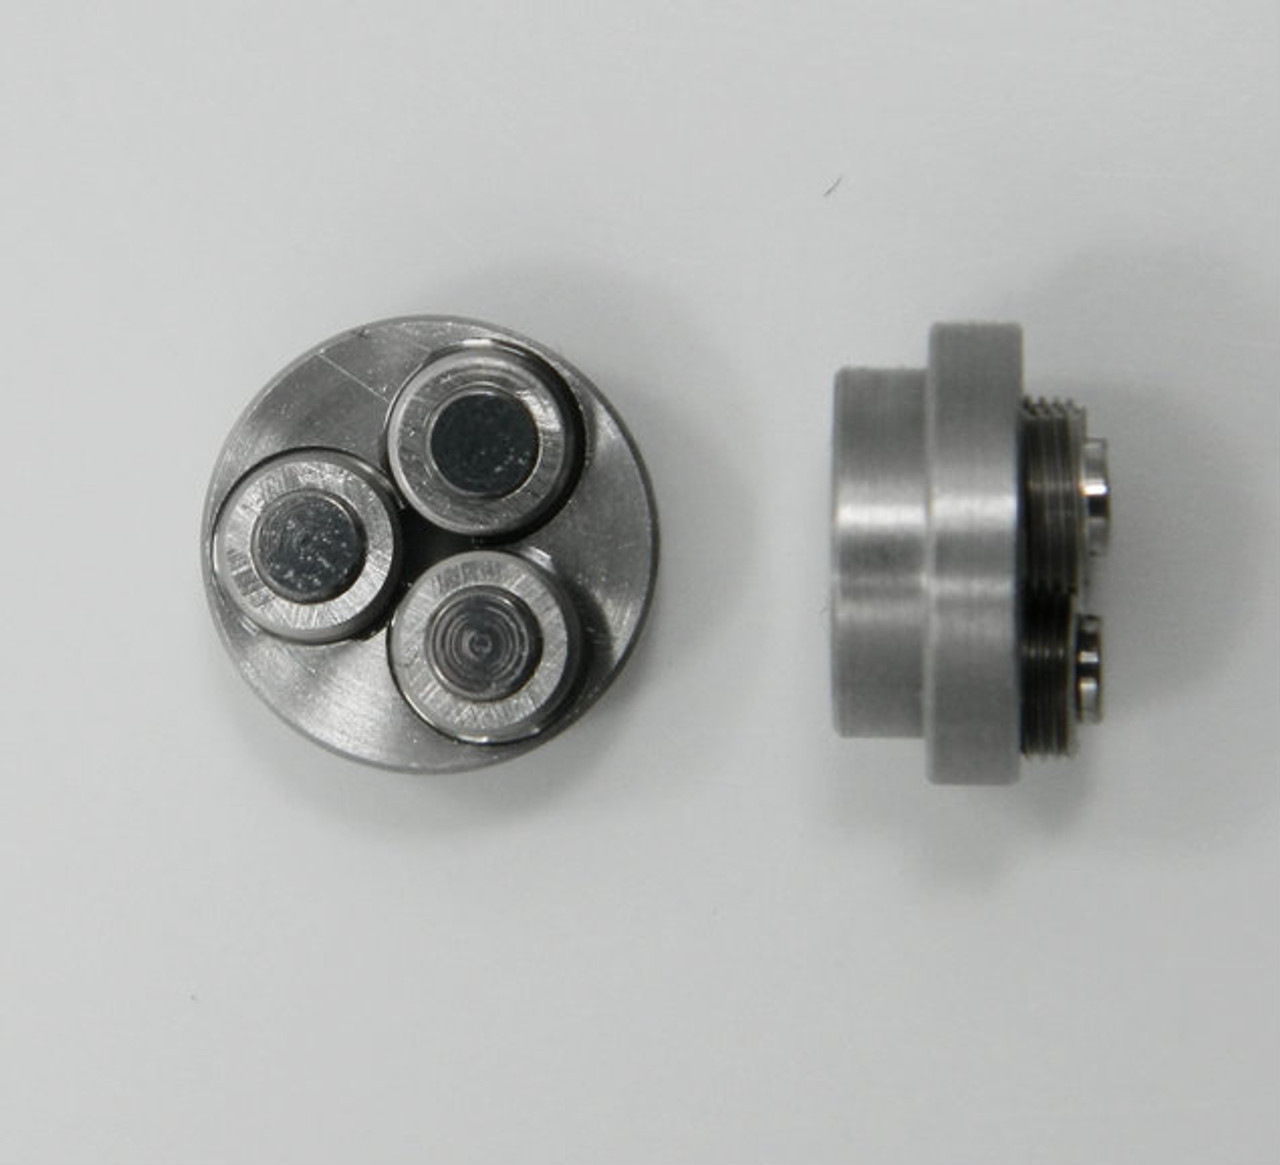 Metric Thread forming roll die M1.40 also called 1.40UNM Habegger brand style: Non-Adjustable body diameter 8mm  / 10mm, Total Height 5.90mm with  three Rollers made of High speed Steel then hardened. Image is representative of part in our stock.  Holder is item # 1509